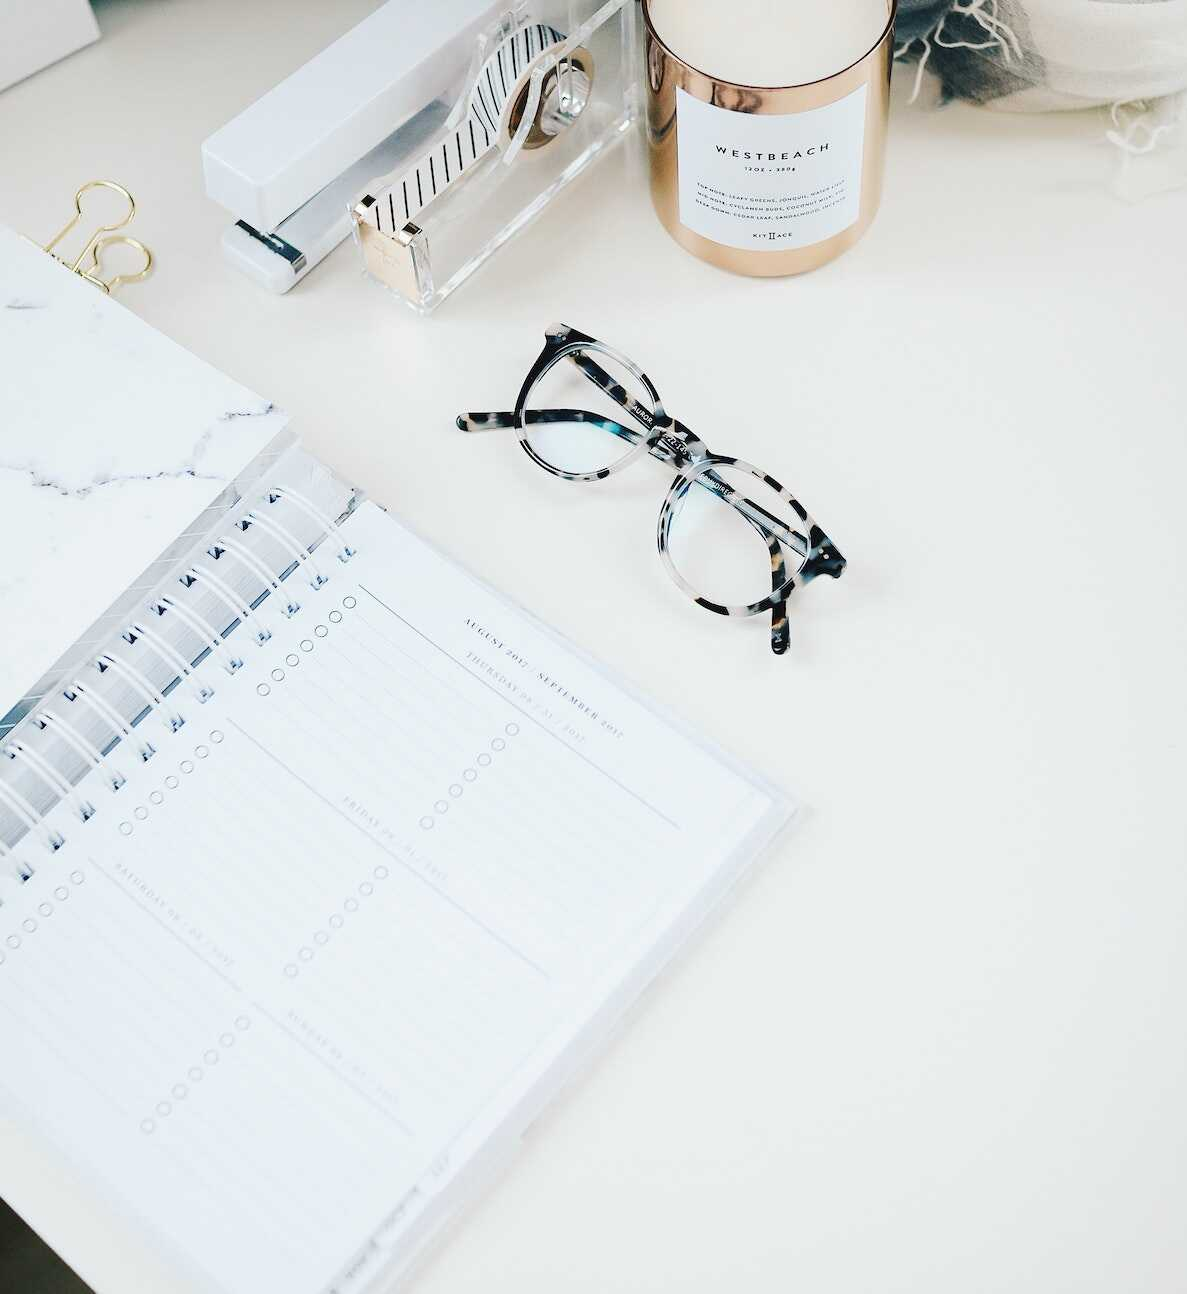 Home office desk featuring a diary, glasses, candle, stapler and washi tape